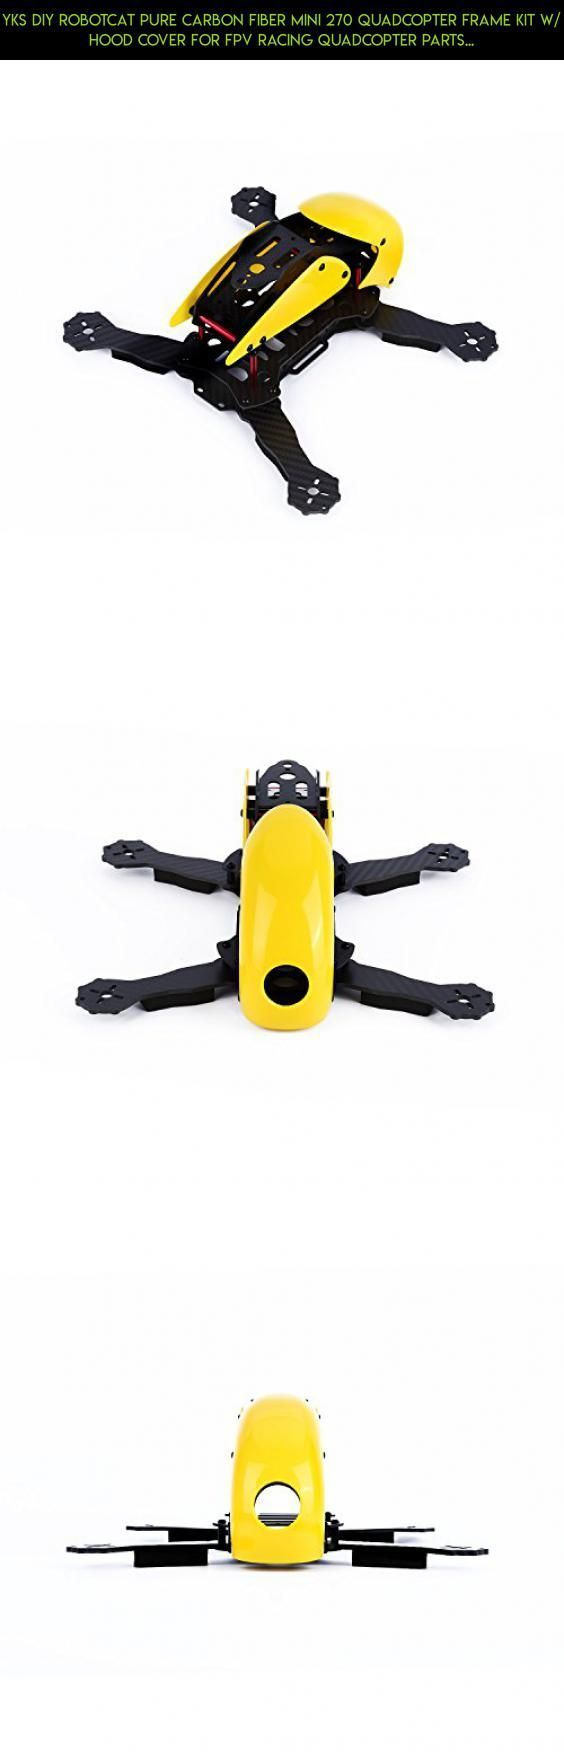 YKS DIY Robotcat Pure Carbon Fiber Mini 270 Quadcopter Frame Kit w/ Hood Cover for FPV Racing Quadcopter Parts (Yellow) #plans #products #technology #fpv #racing #gadgets #robocat #tech #kit #camera #parts #drone #shopping